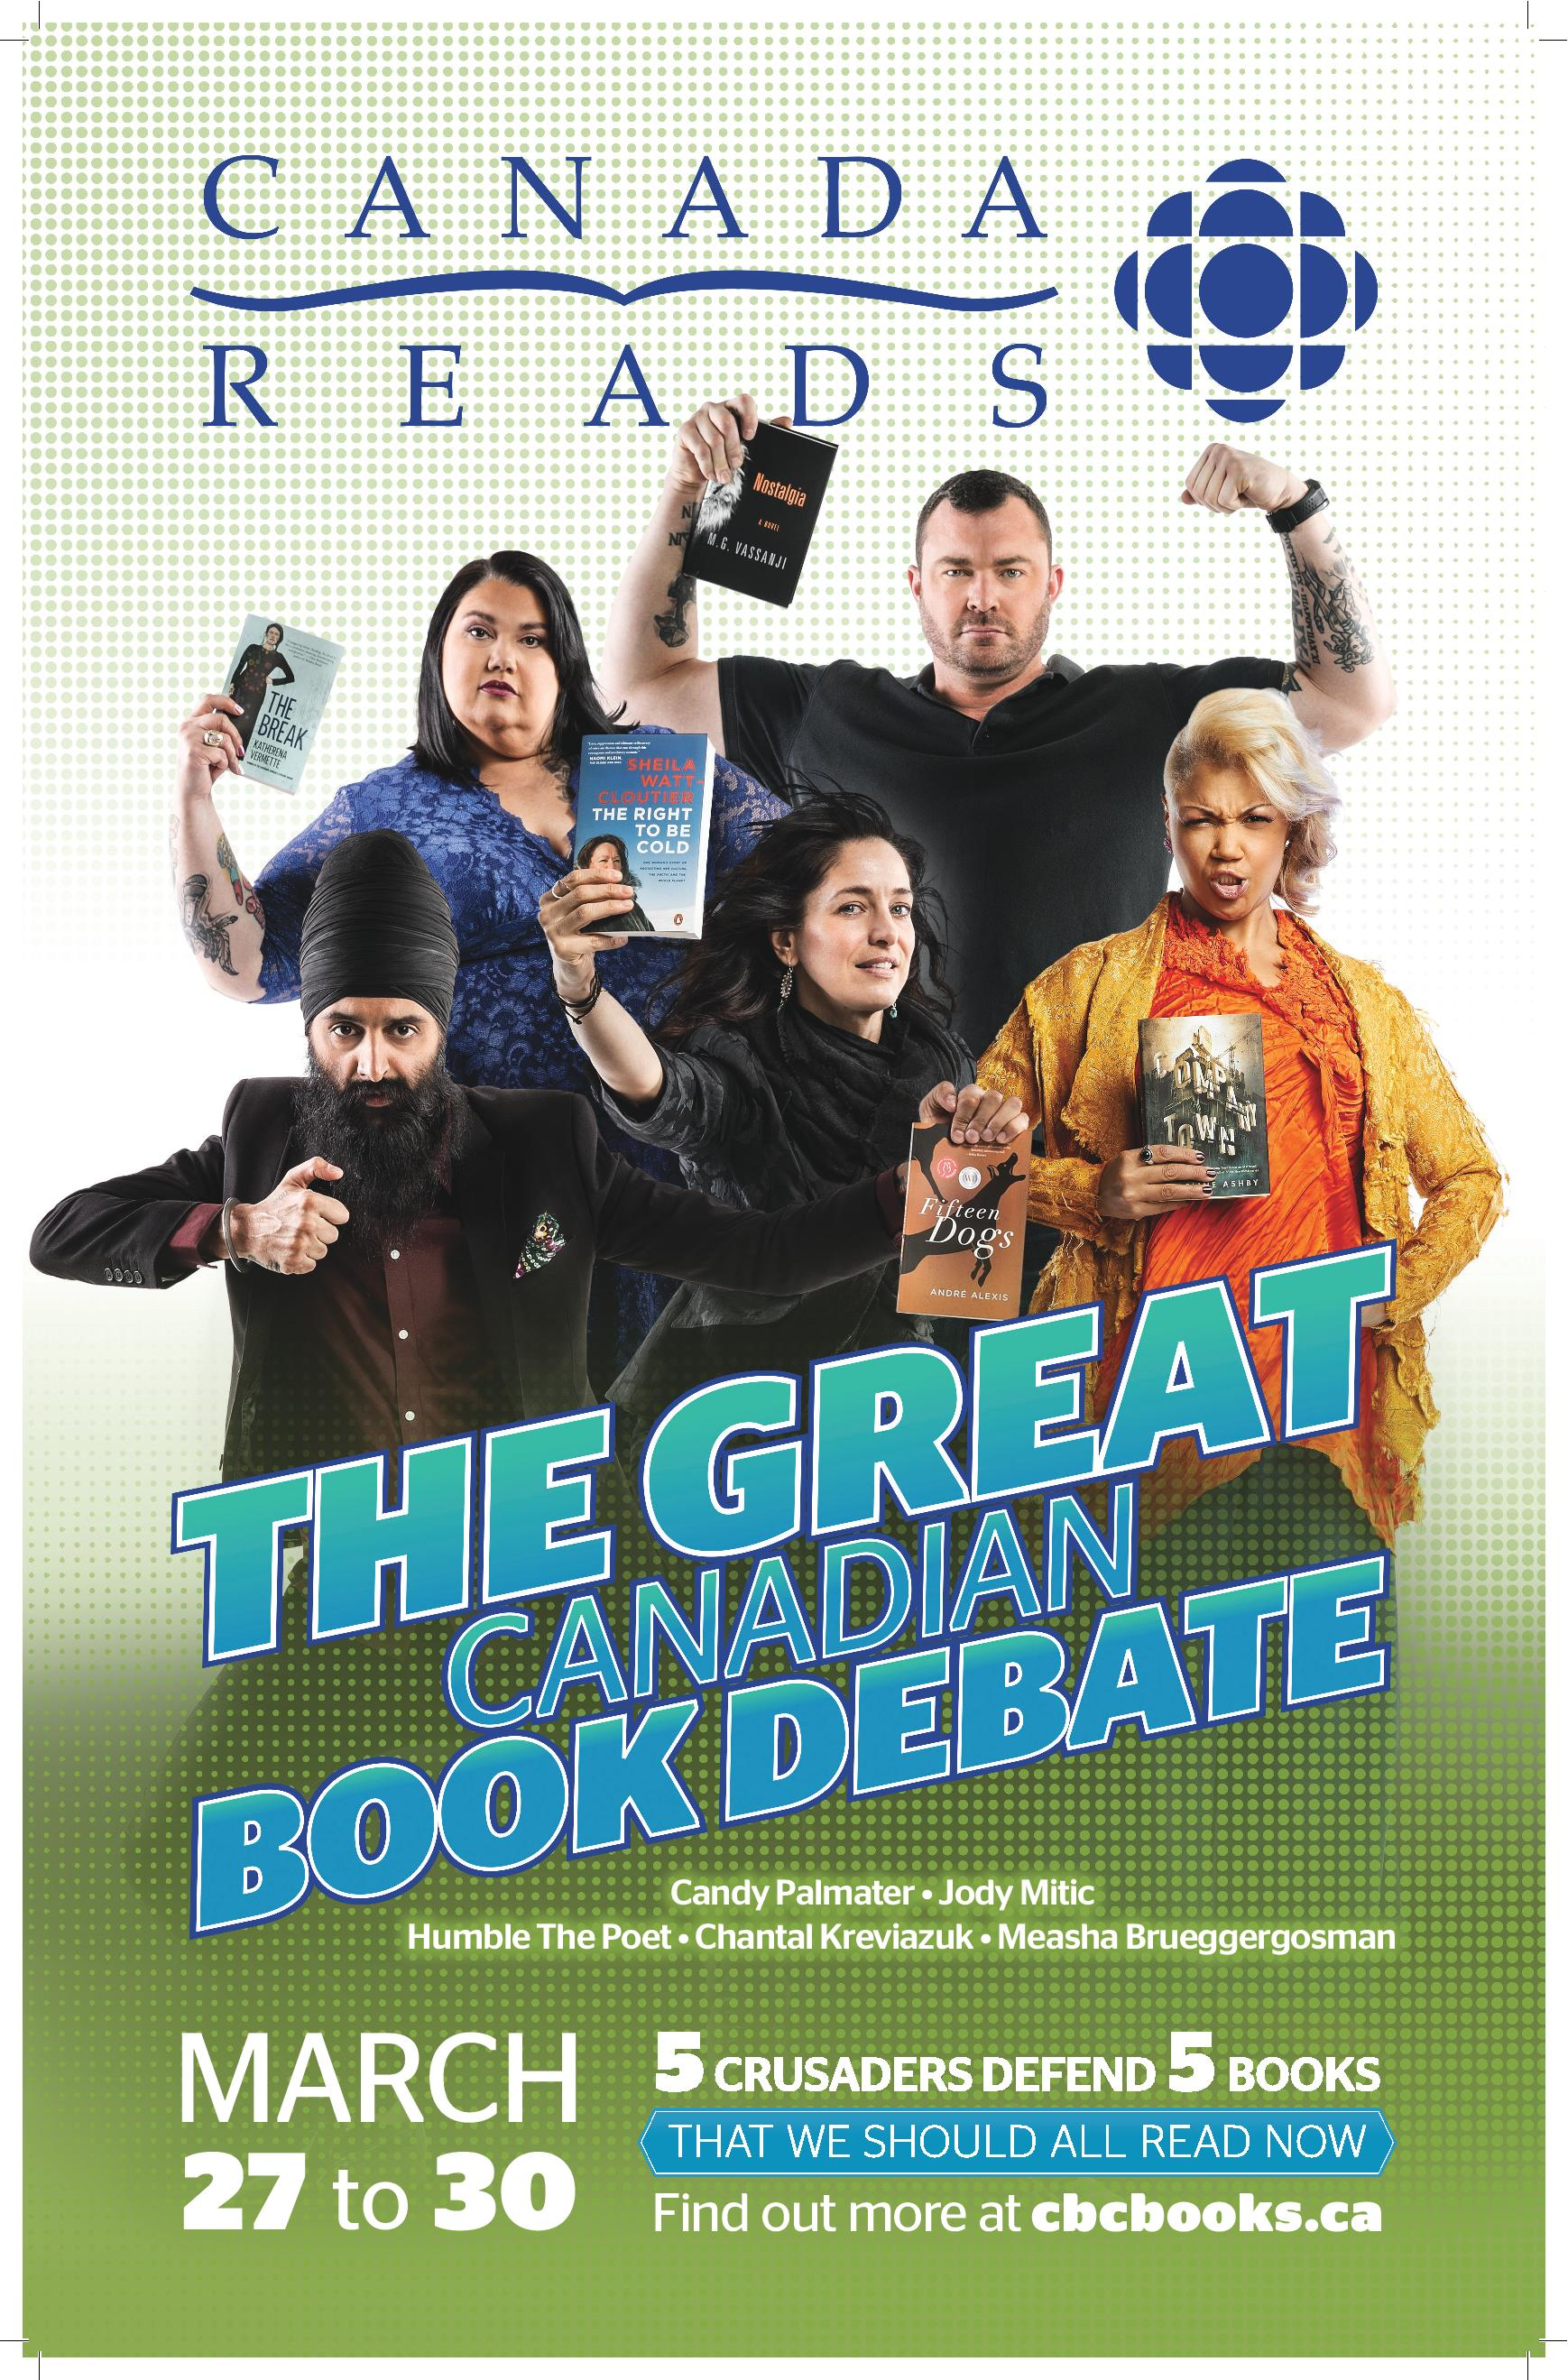 Join us at the library on March 27 through 30 at 11:00 am for the live broadcast of Canada Reads 2017 on CBC Radio